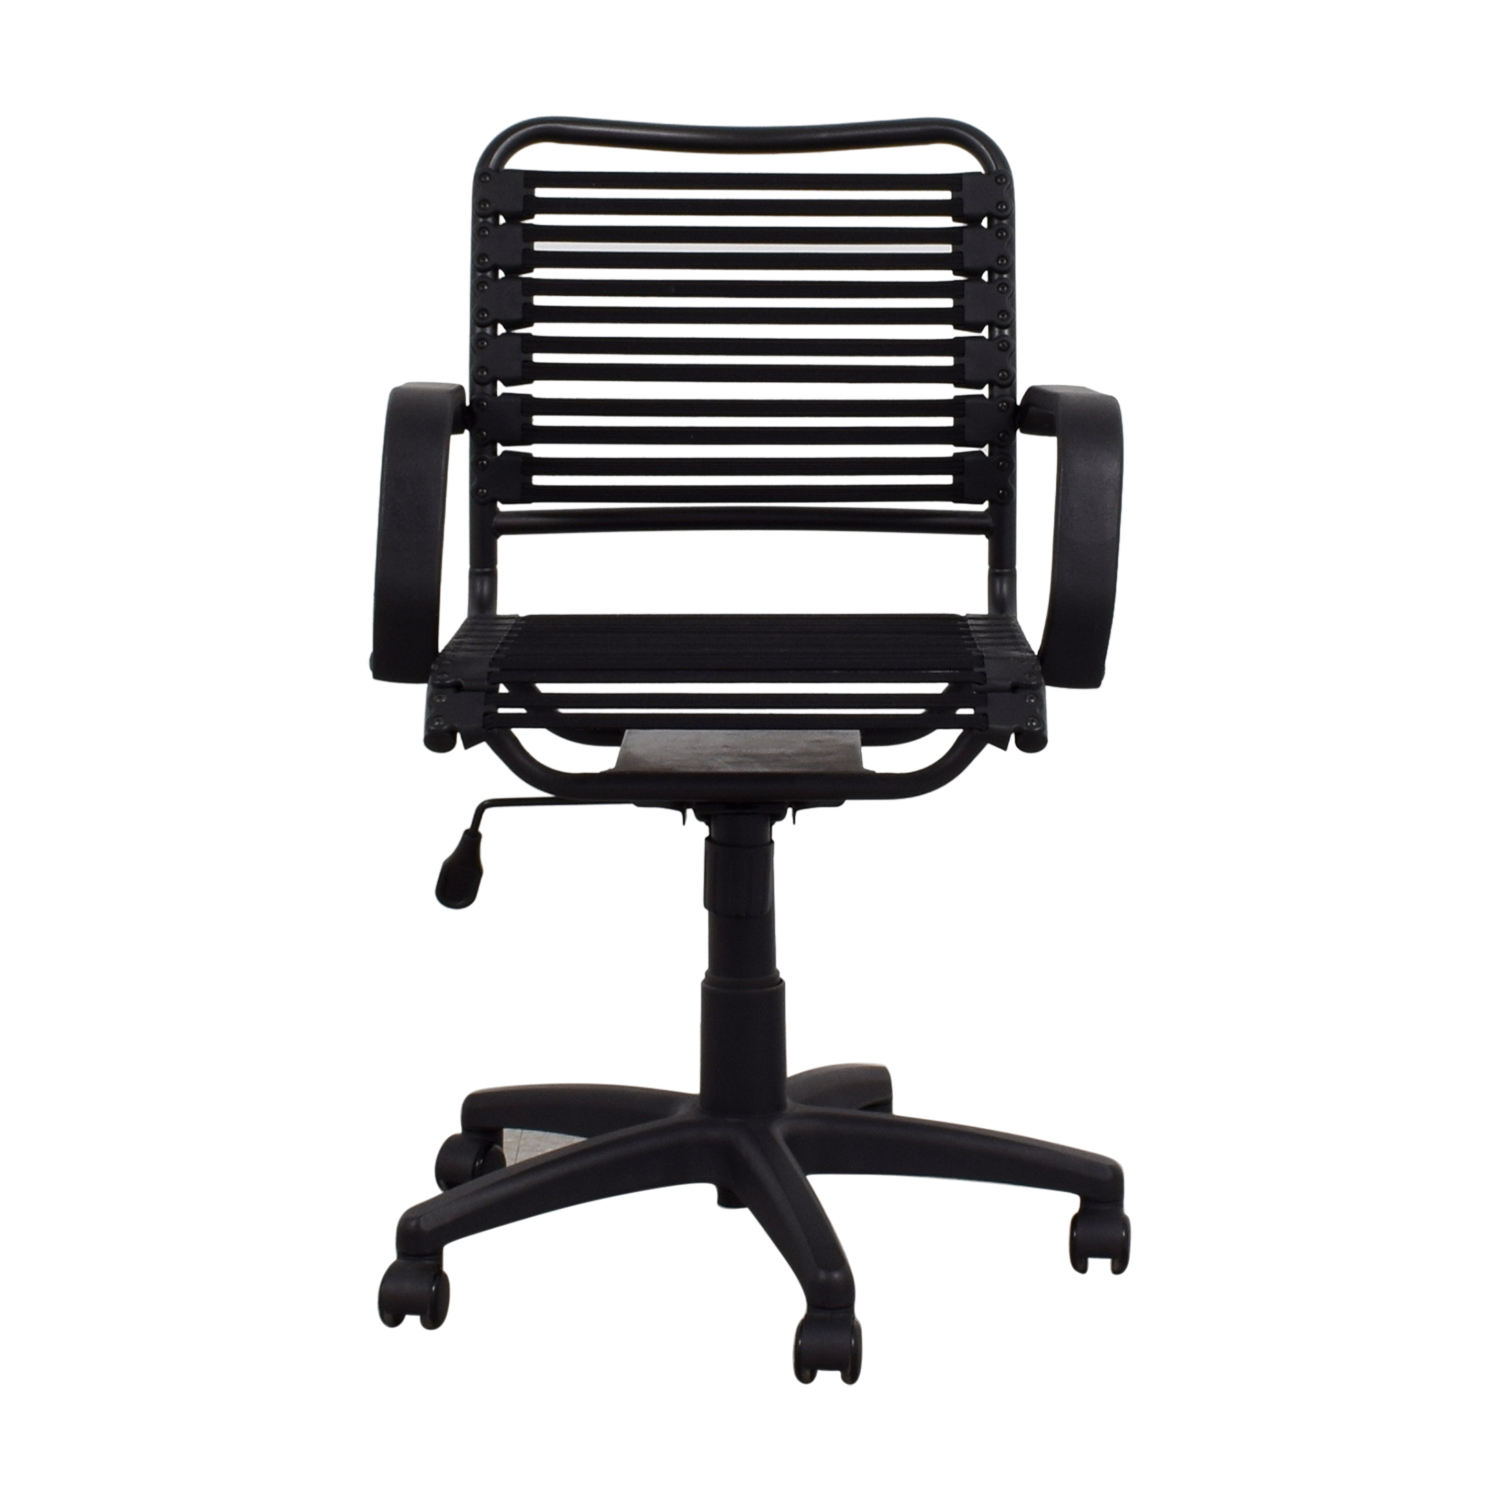 shop Black Desk Chair online